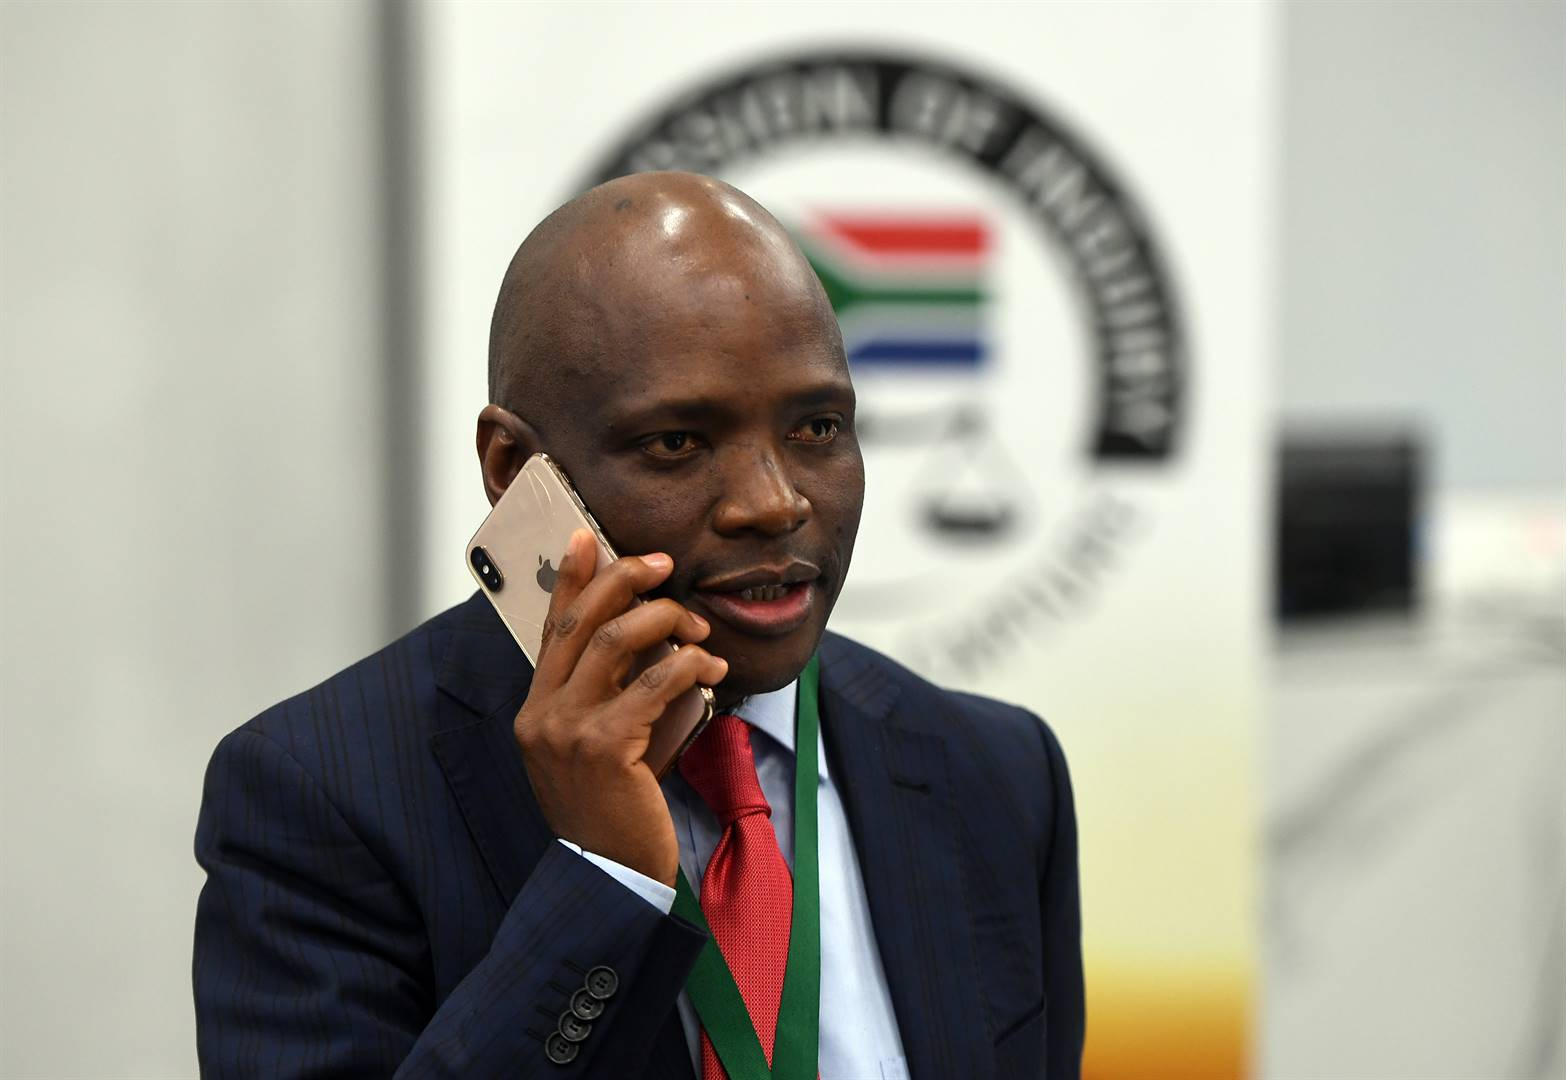 News24.com | Hlaudi Motsoeneng ordered to pay support bigger than R850k of SABC money earlier faculty for non-public like minded costs